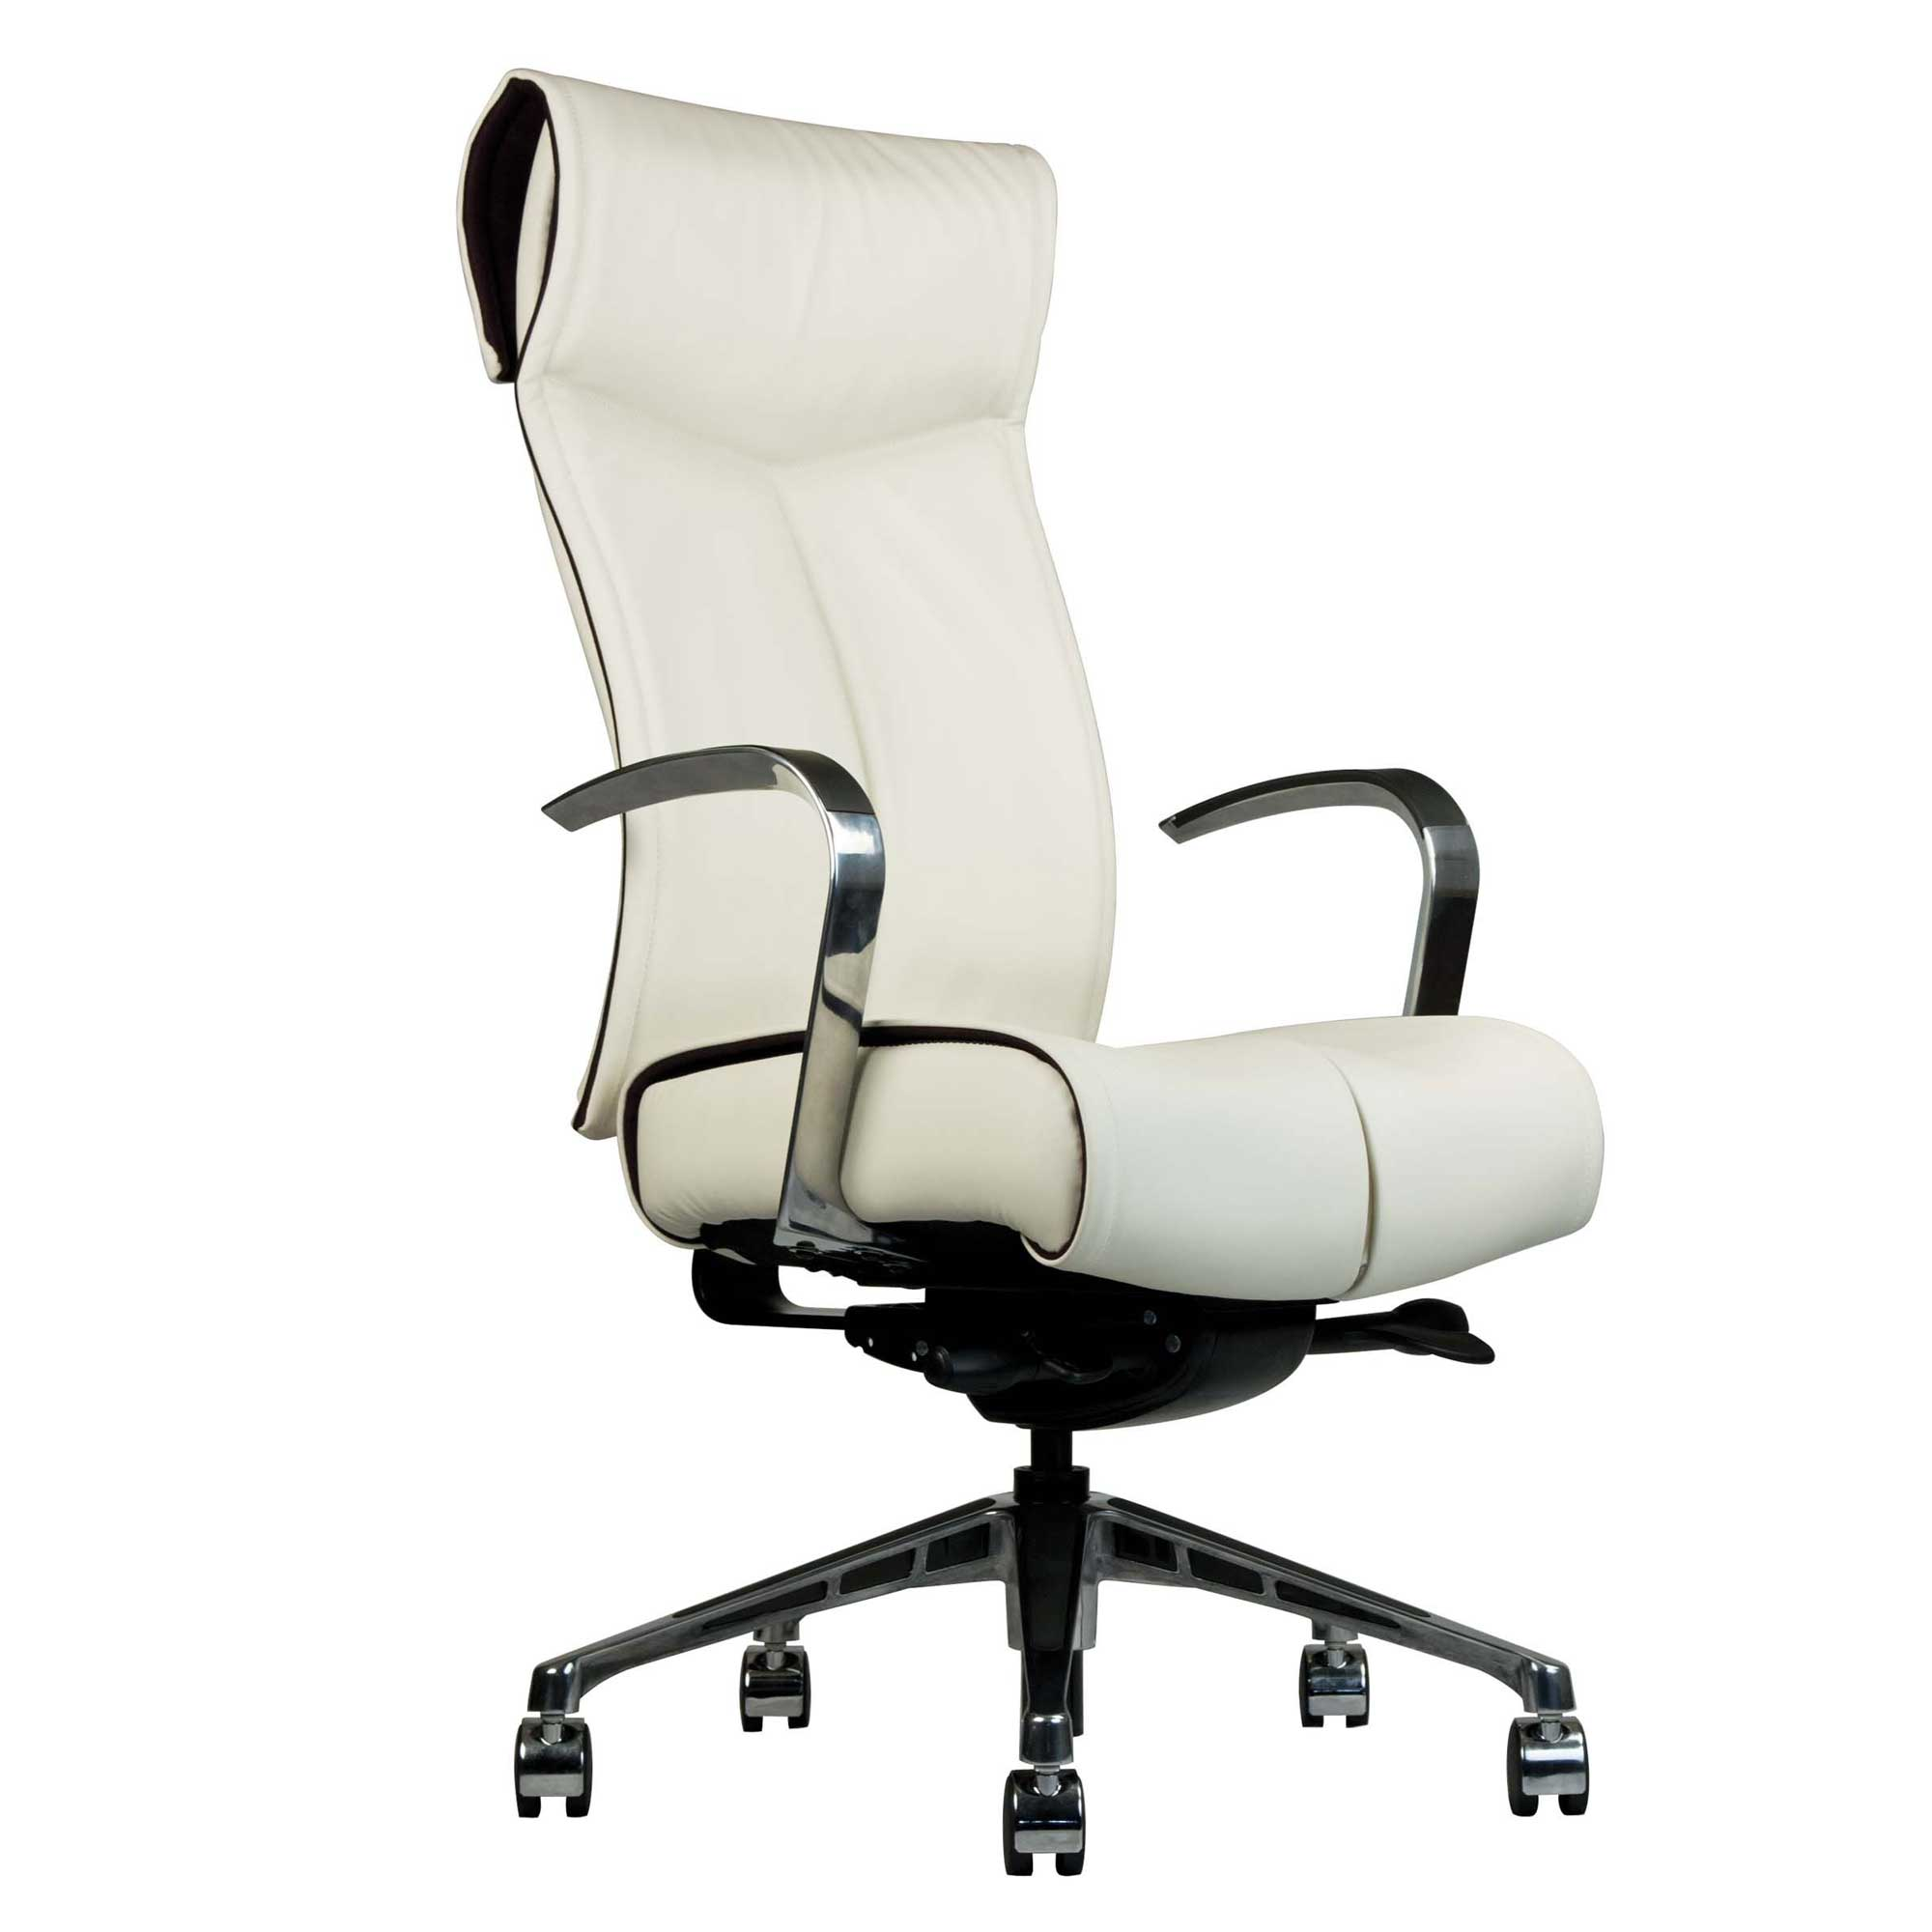 NV white leather ergonomic executive chair with steel arms